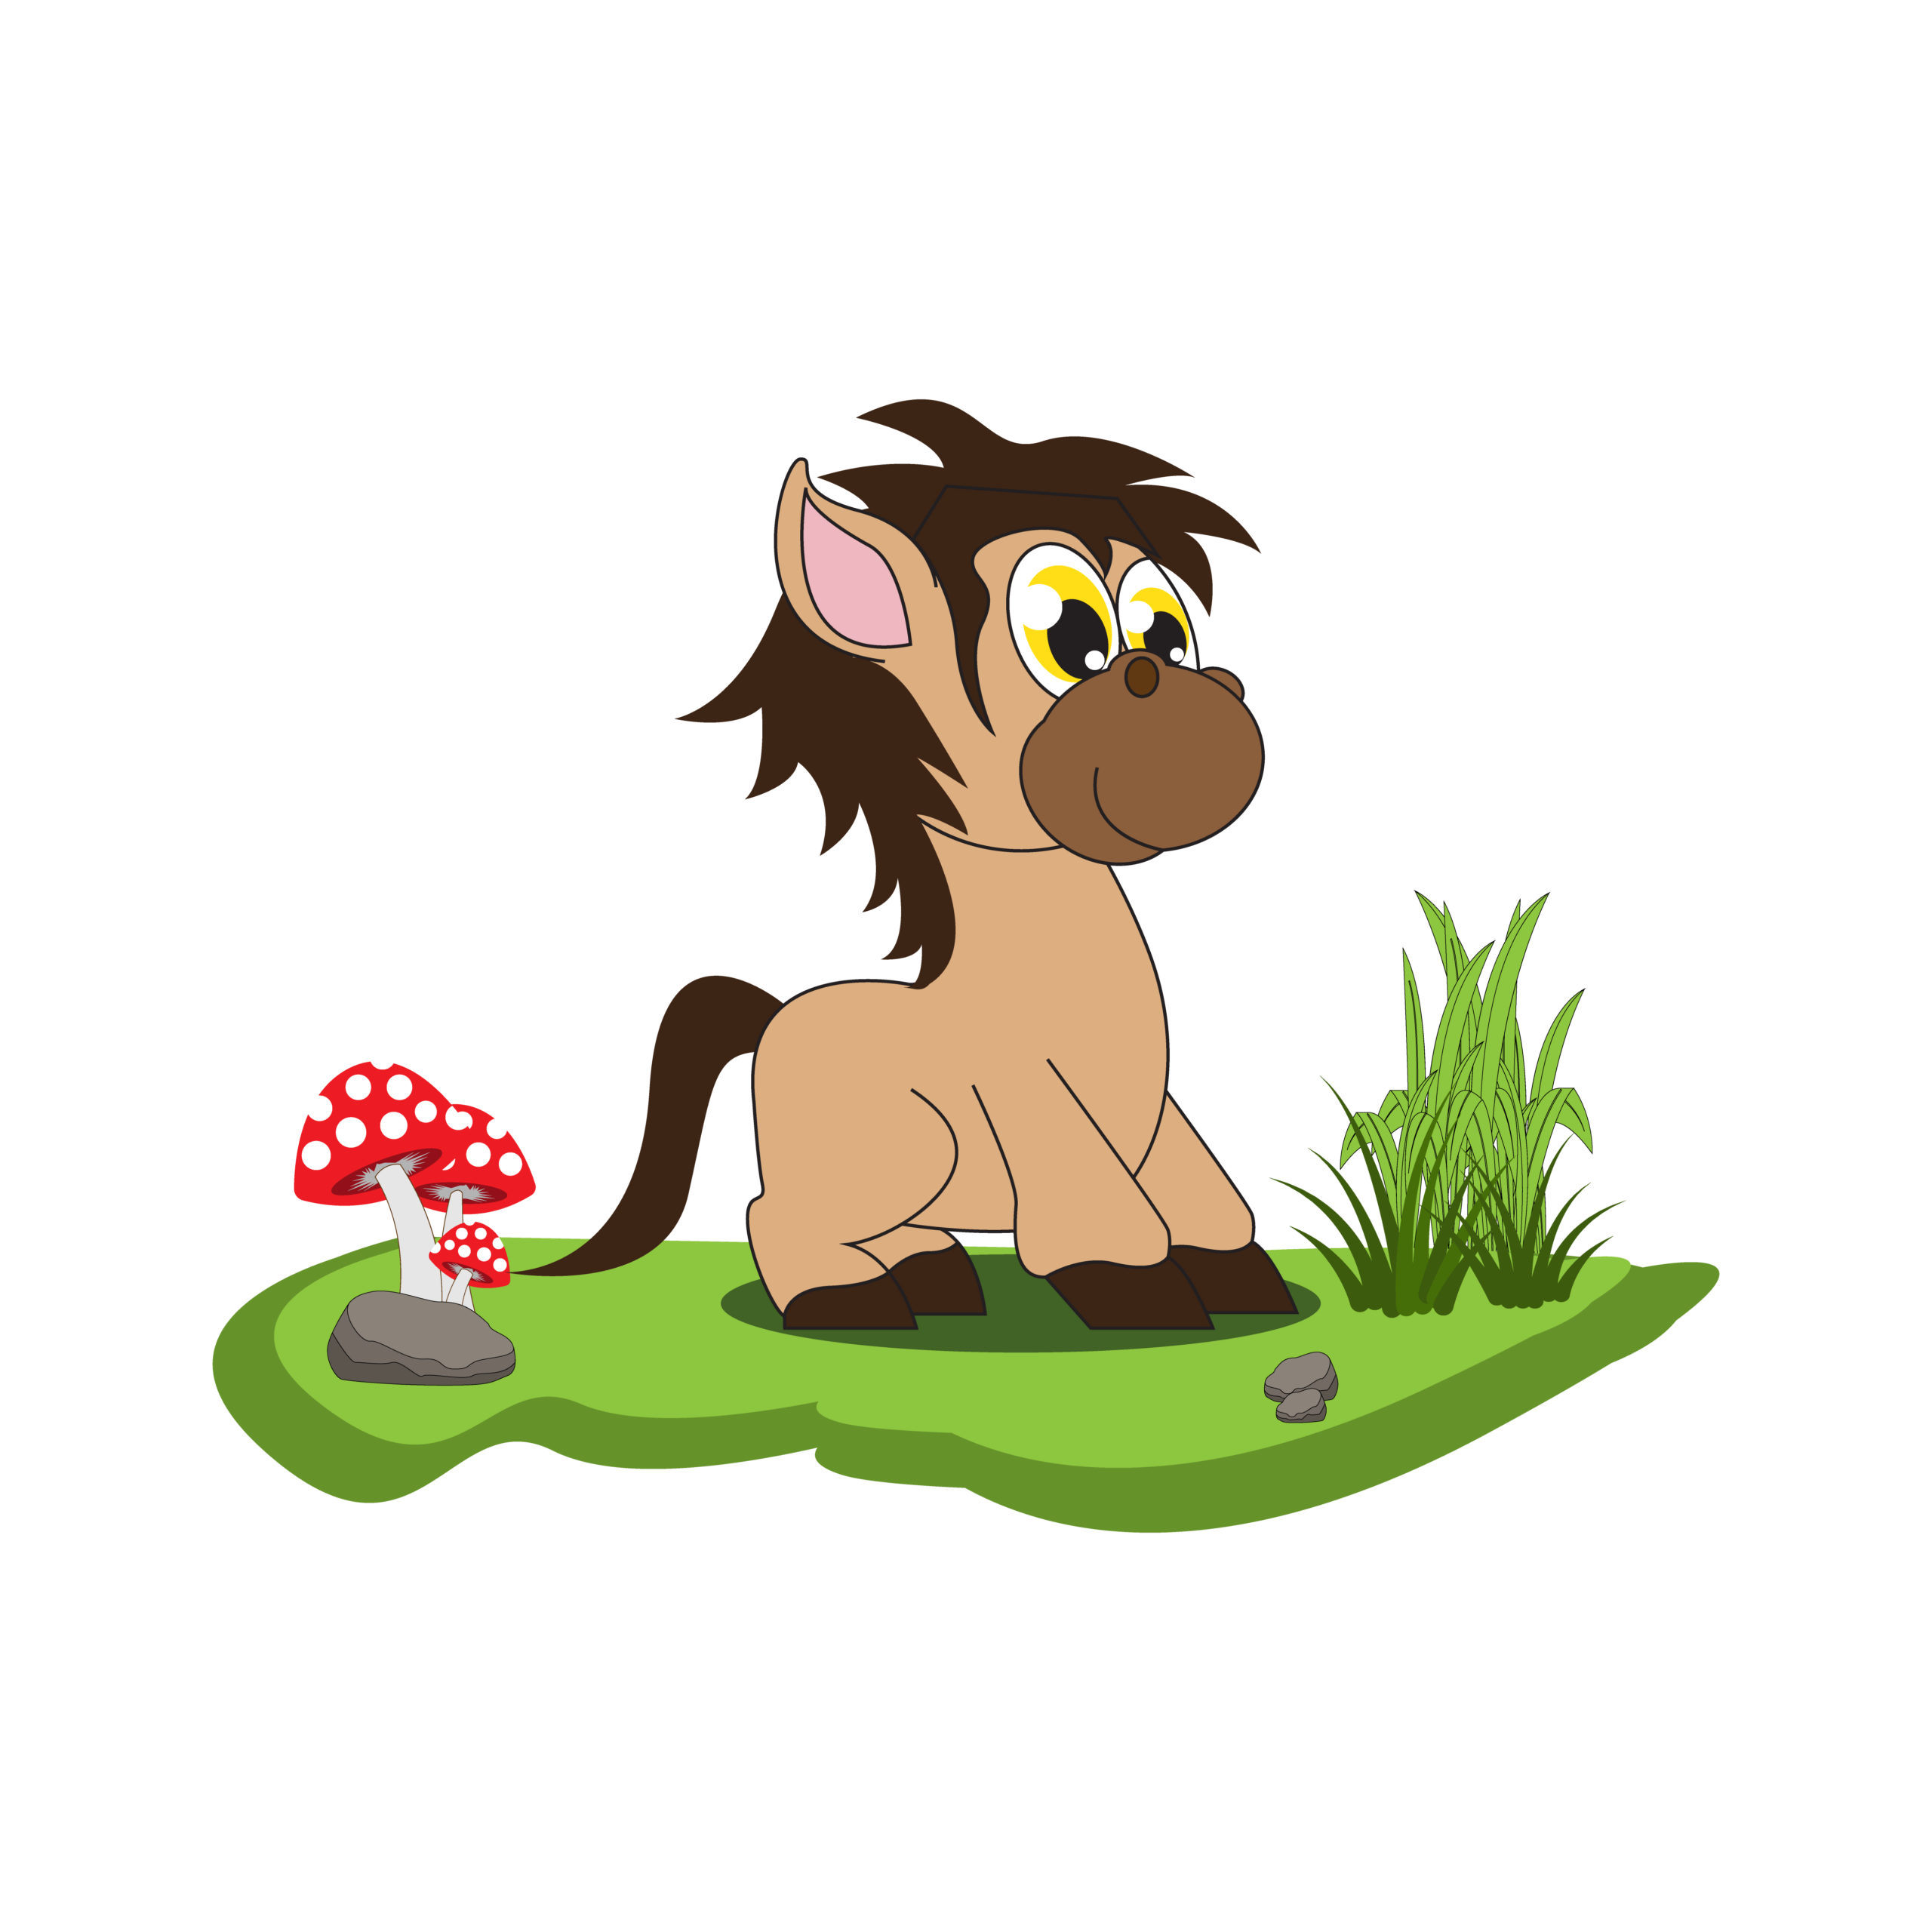 Adorable Horse Animal Cartoon Illustration Vector Design Crella